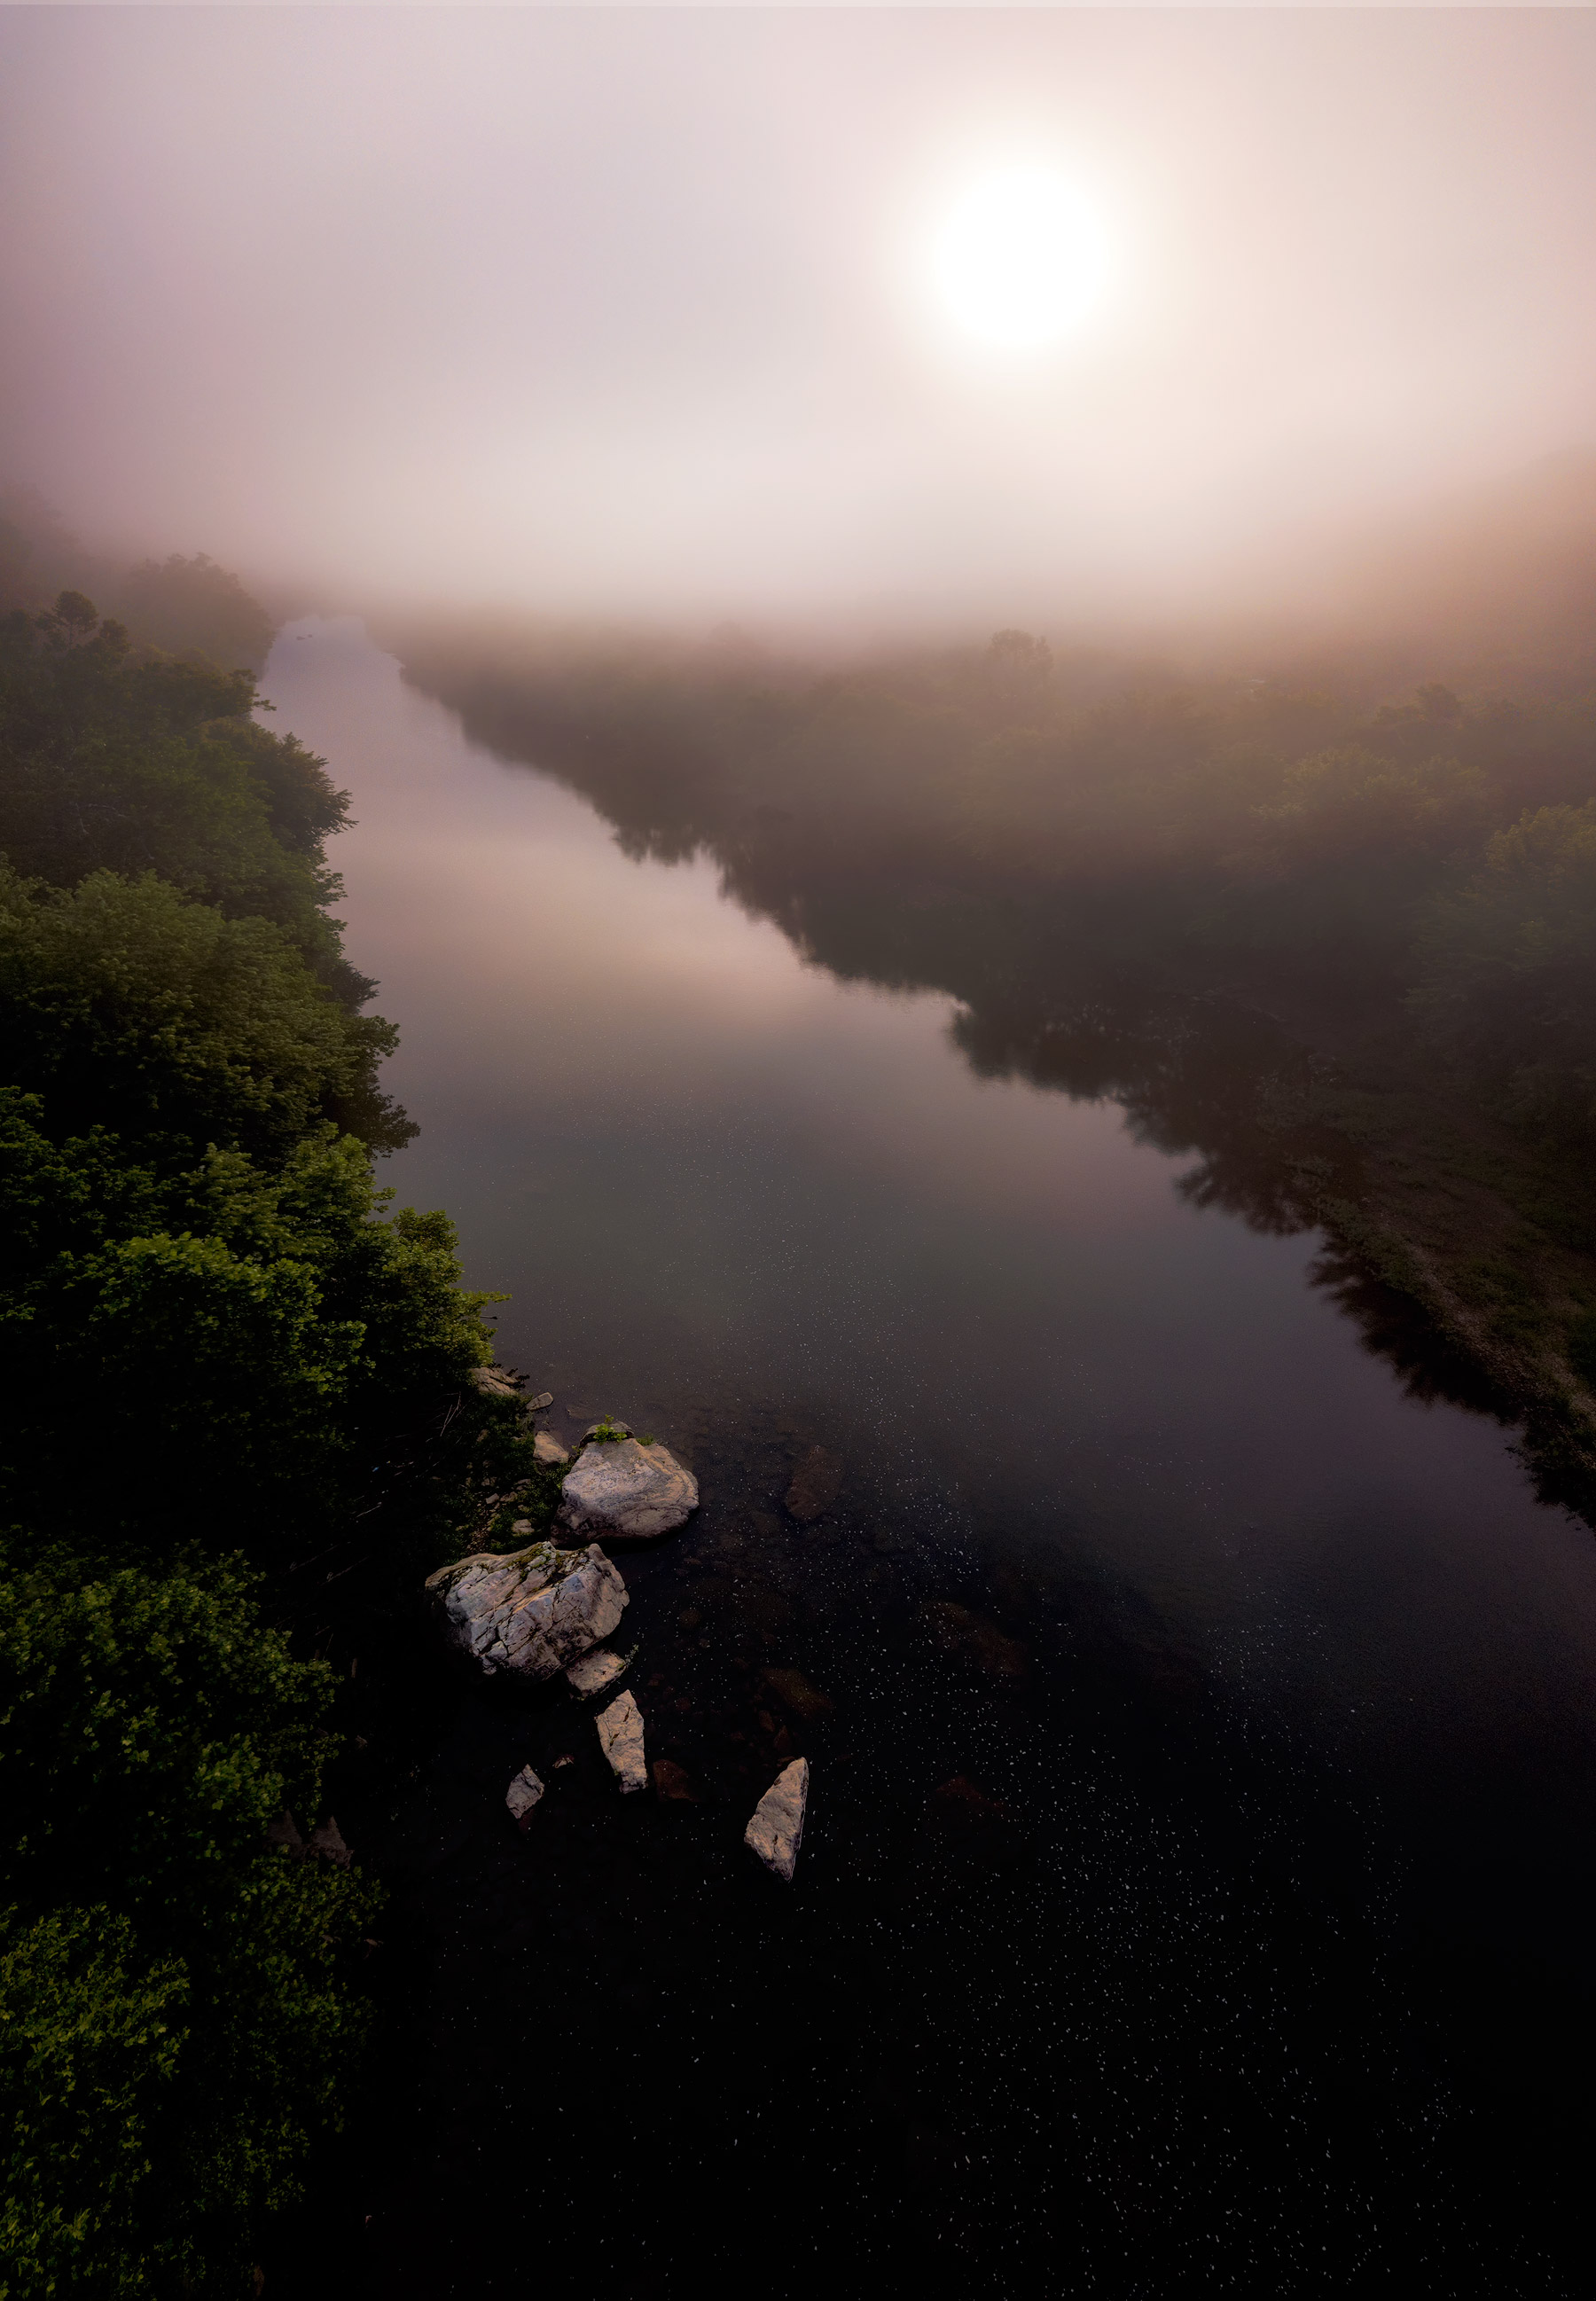 South Branch Below the Fog